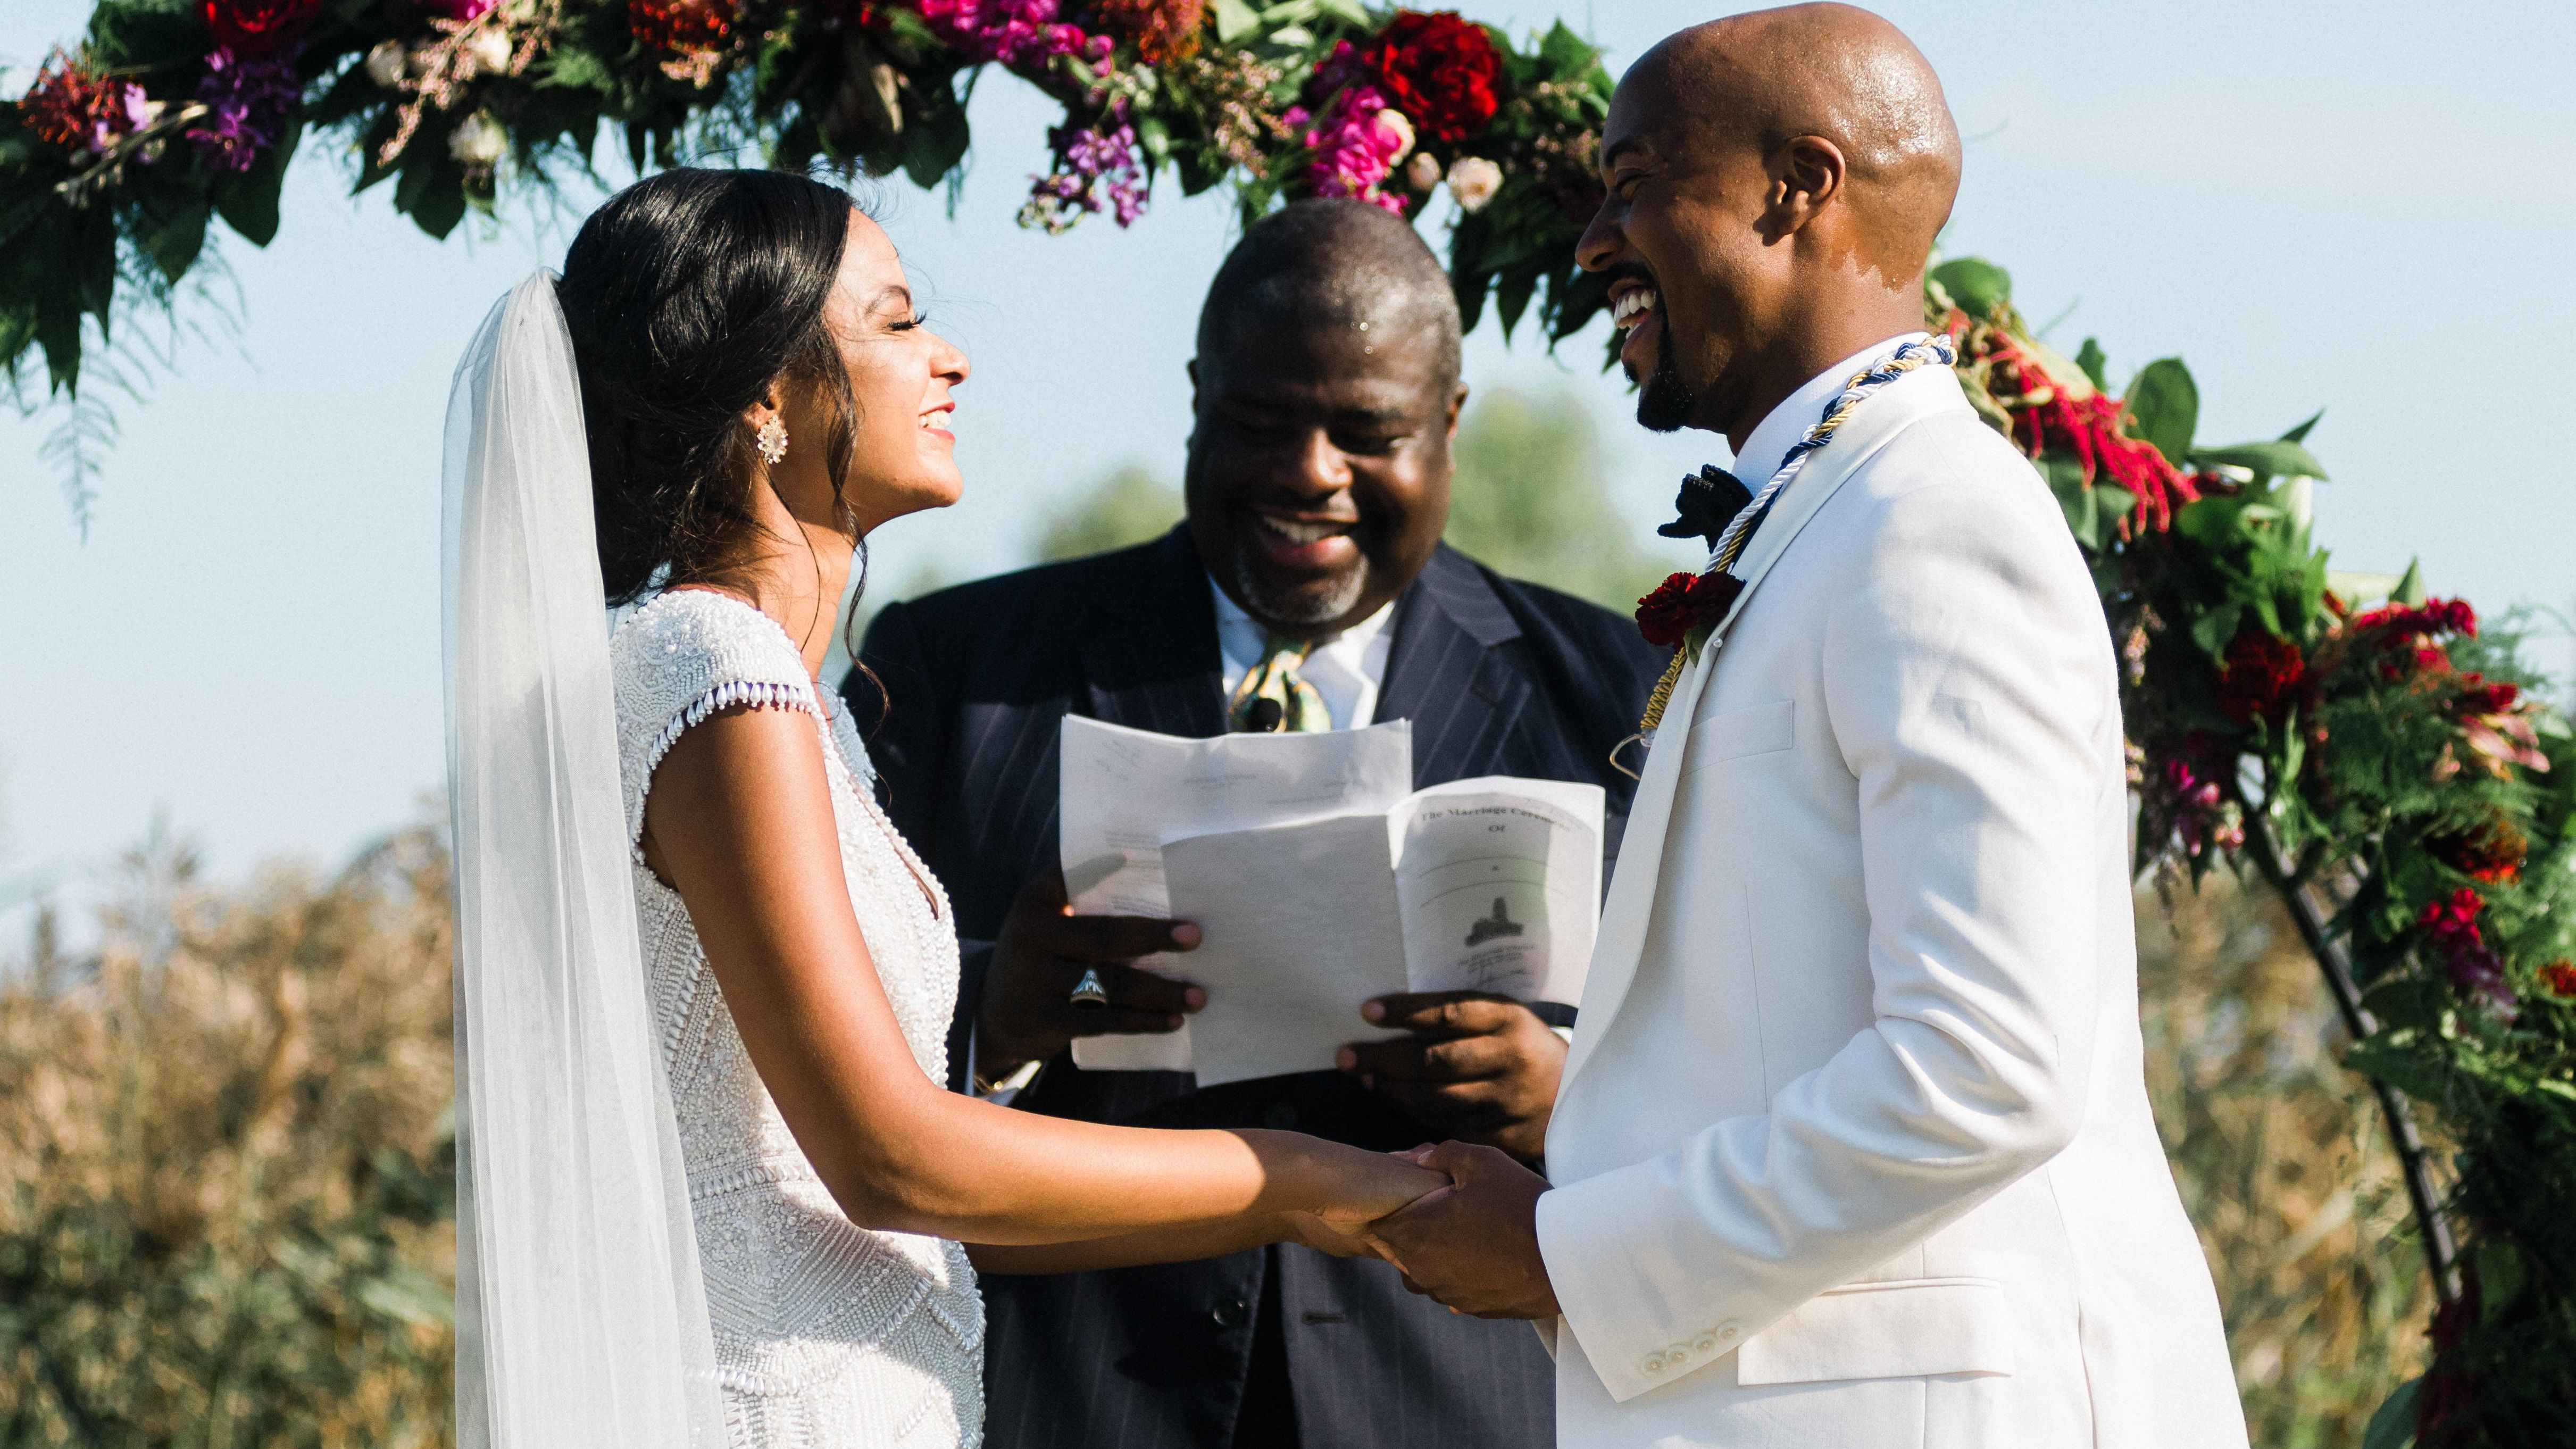 How Long Is a Wedding Ceremony Supposed to Be?